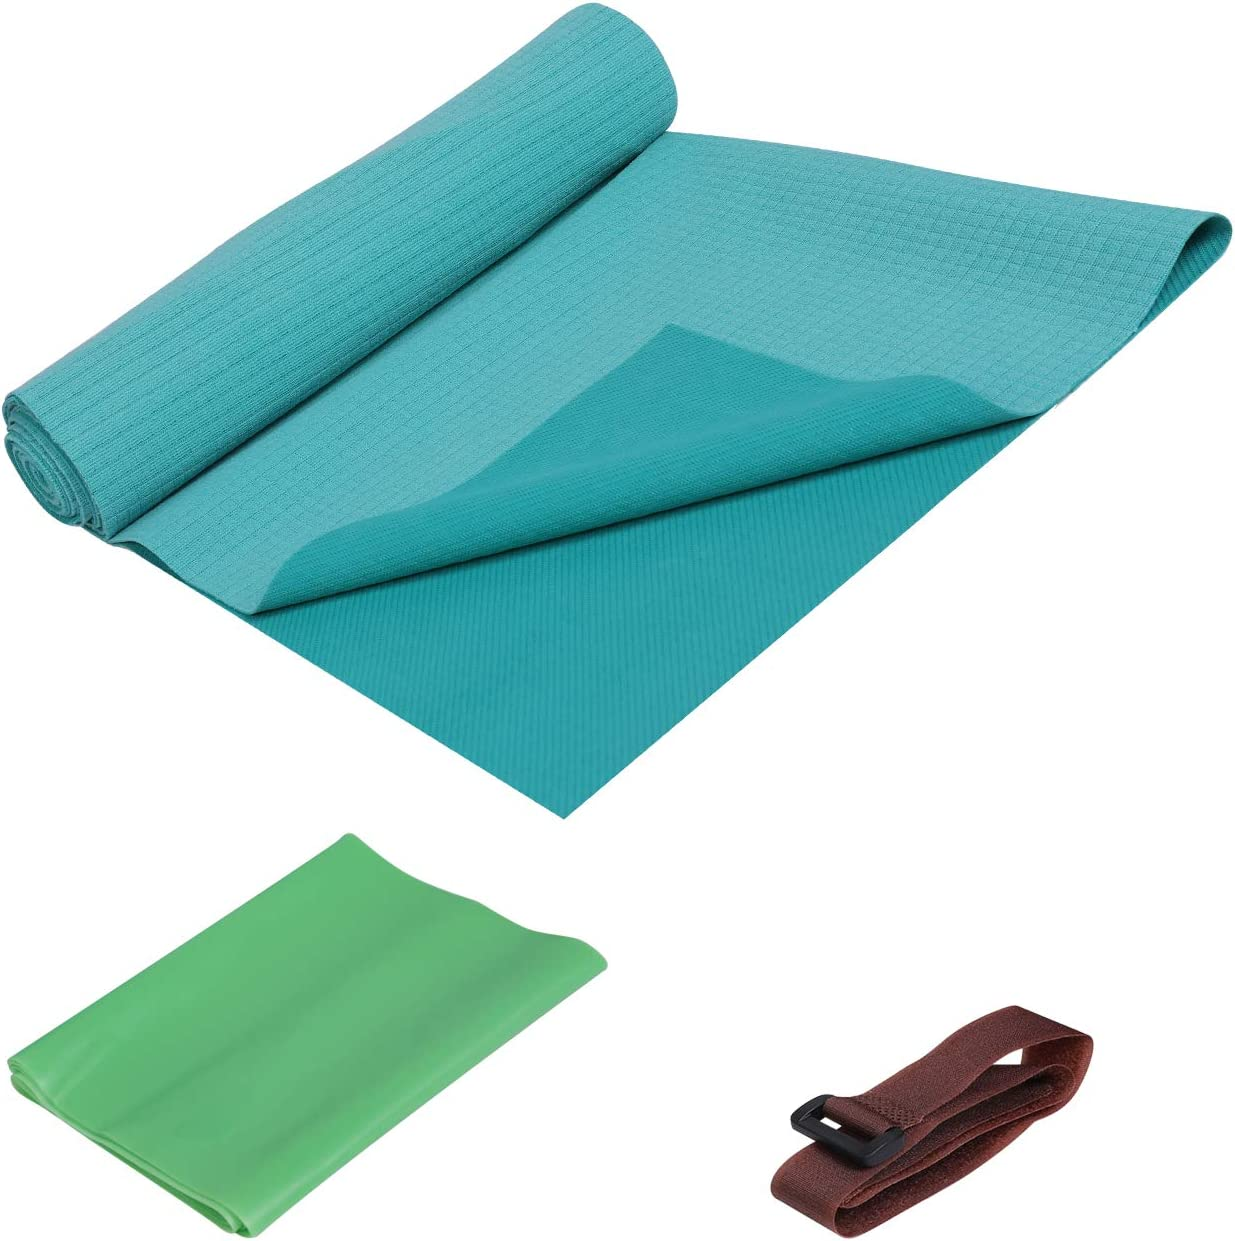 FrenzyBird 1mm Travel Yoga Mat/Towel with Mat Bind and Elastic String,Light Weighted,Foldable, Ideal for Hot Yoga,Bikram,Pilates,Barre, Sweat